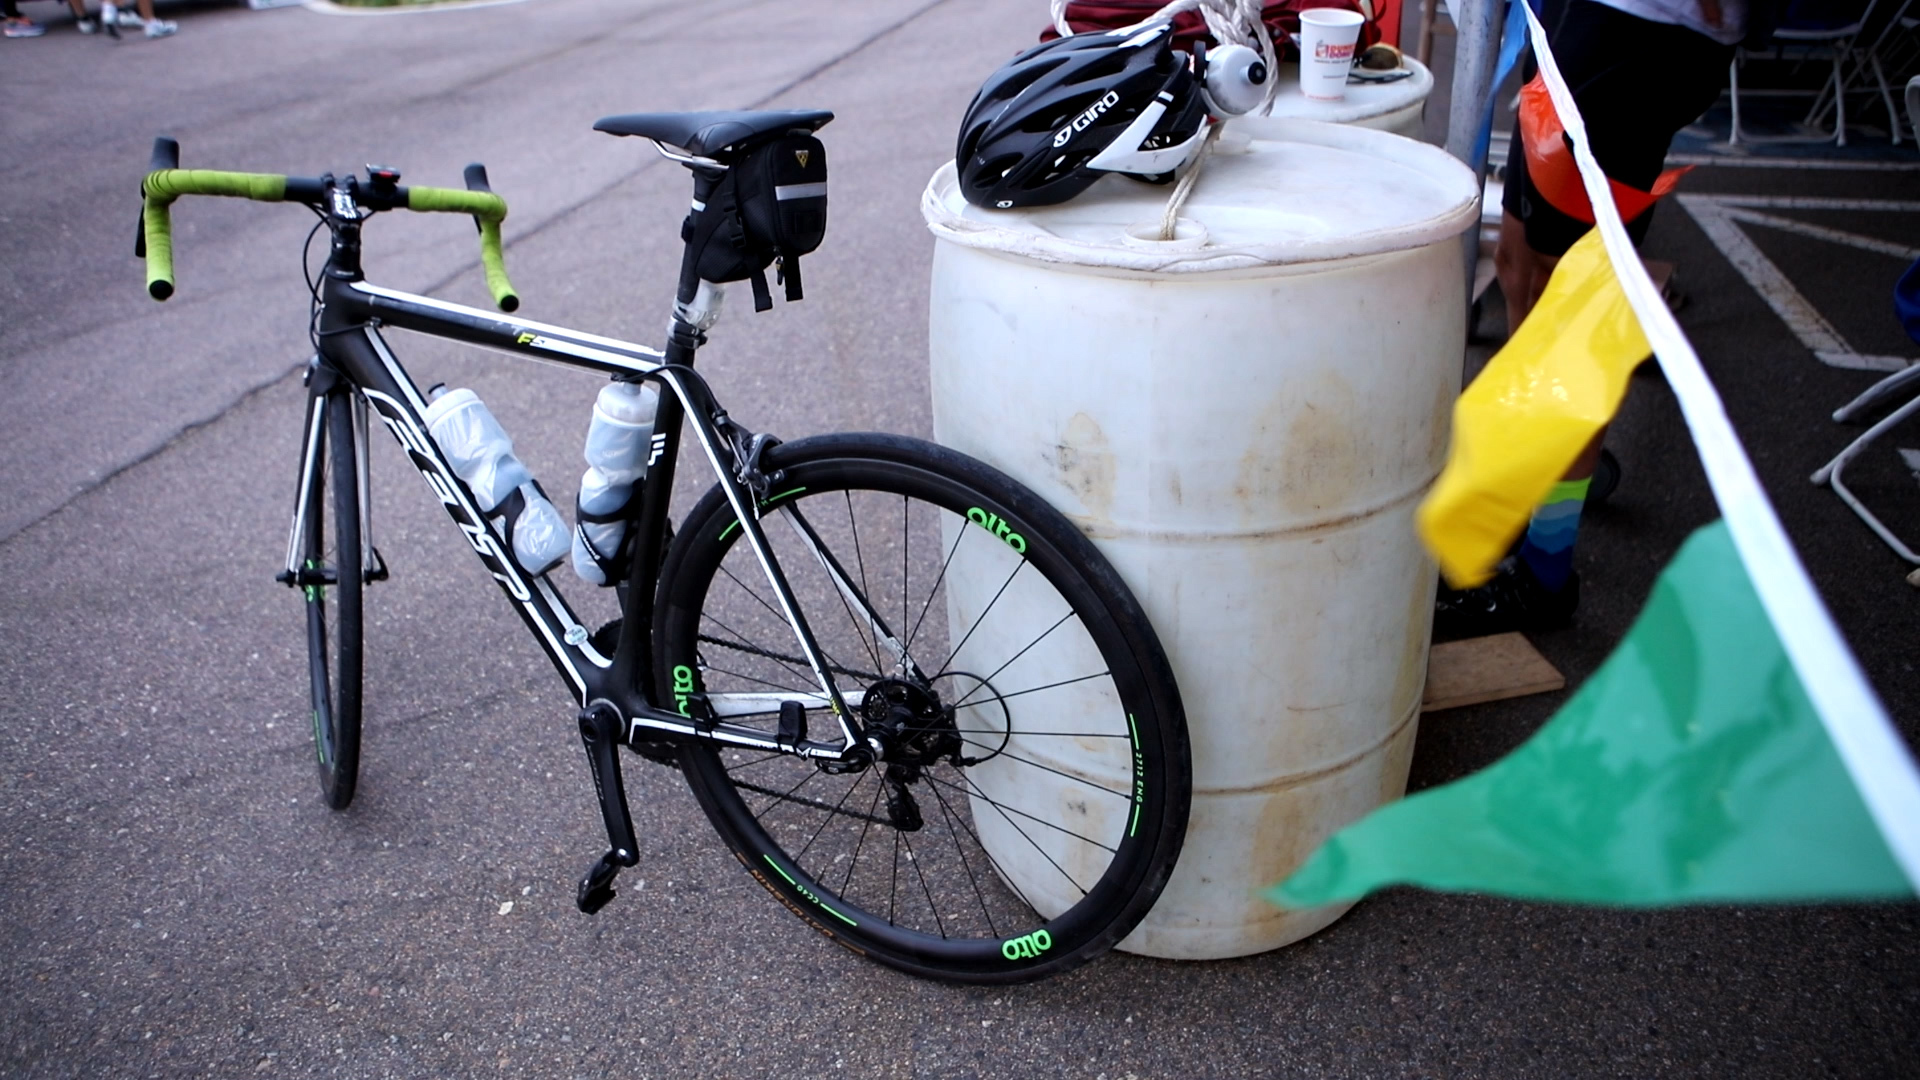 Craig Hospital Spinal Cord Injury and Traumatic Brain Injury Patient Brian Roders' Bike